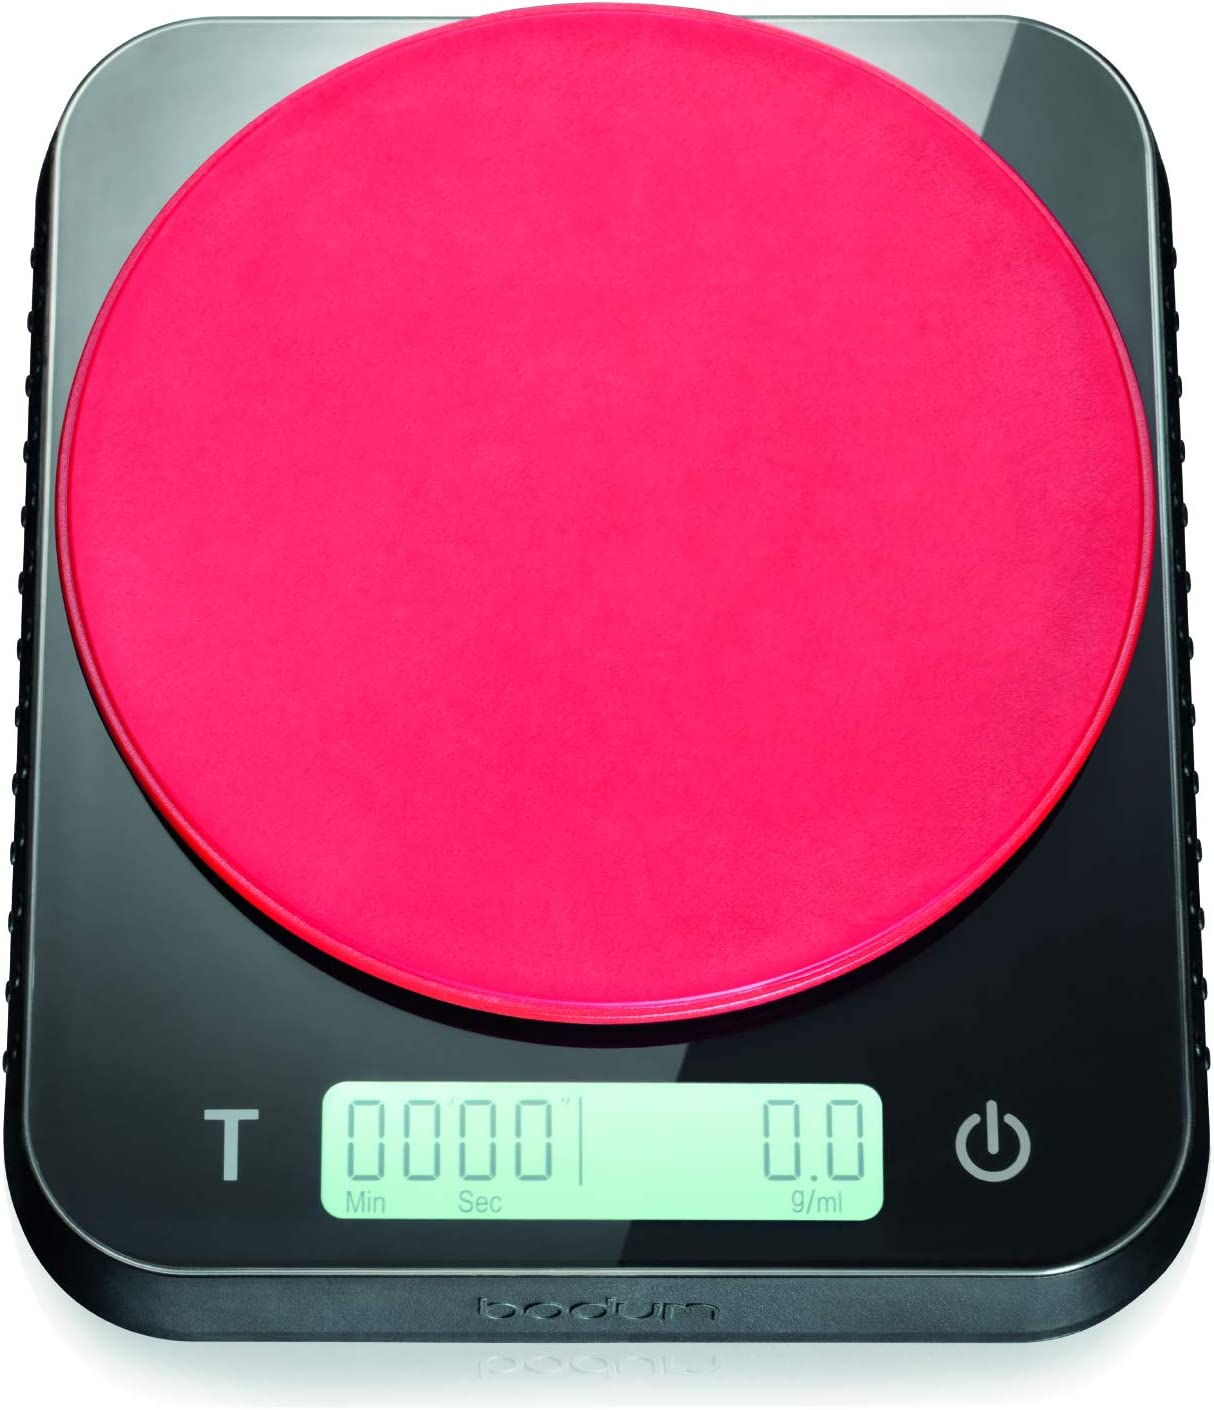 Bodum Barista Coffee and Food High Super beauty product restock quality top! quality Scale Built-in with in Timer 6 x